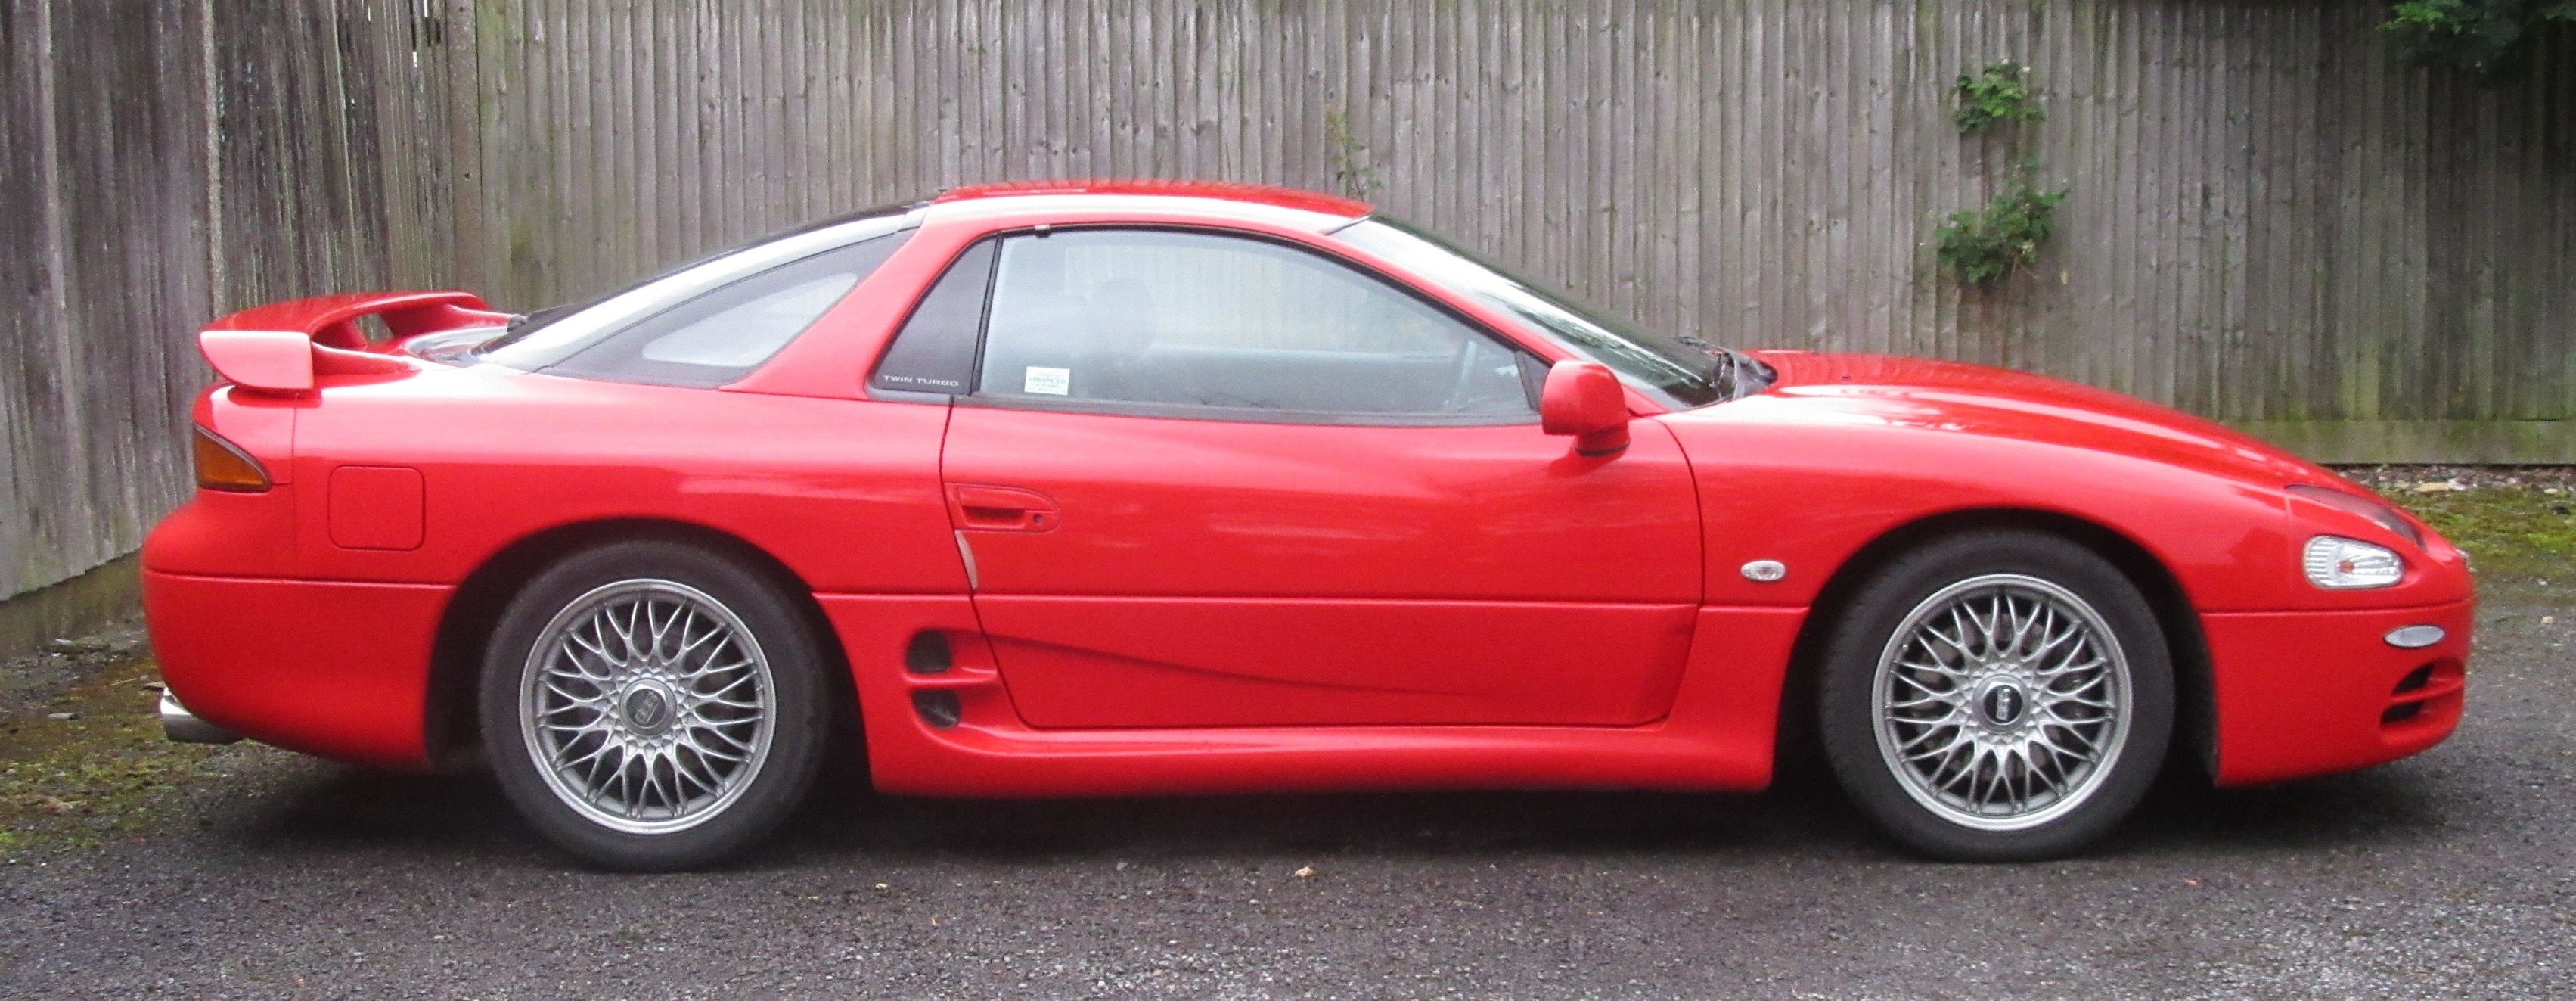 bhp for in cars team sale mitsubishi page stealths gto india forum super pics imports